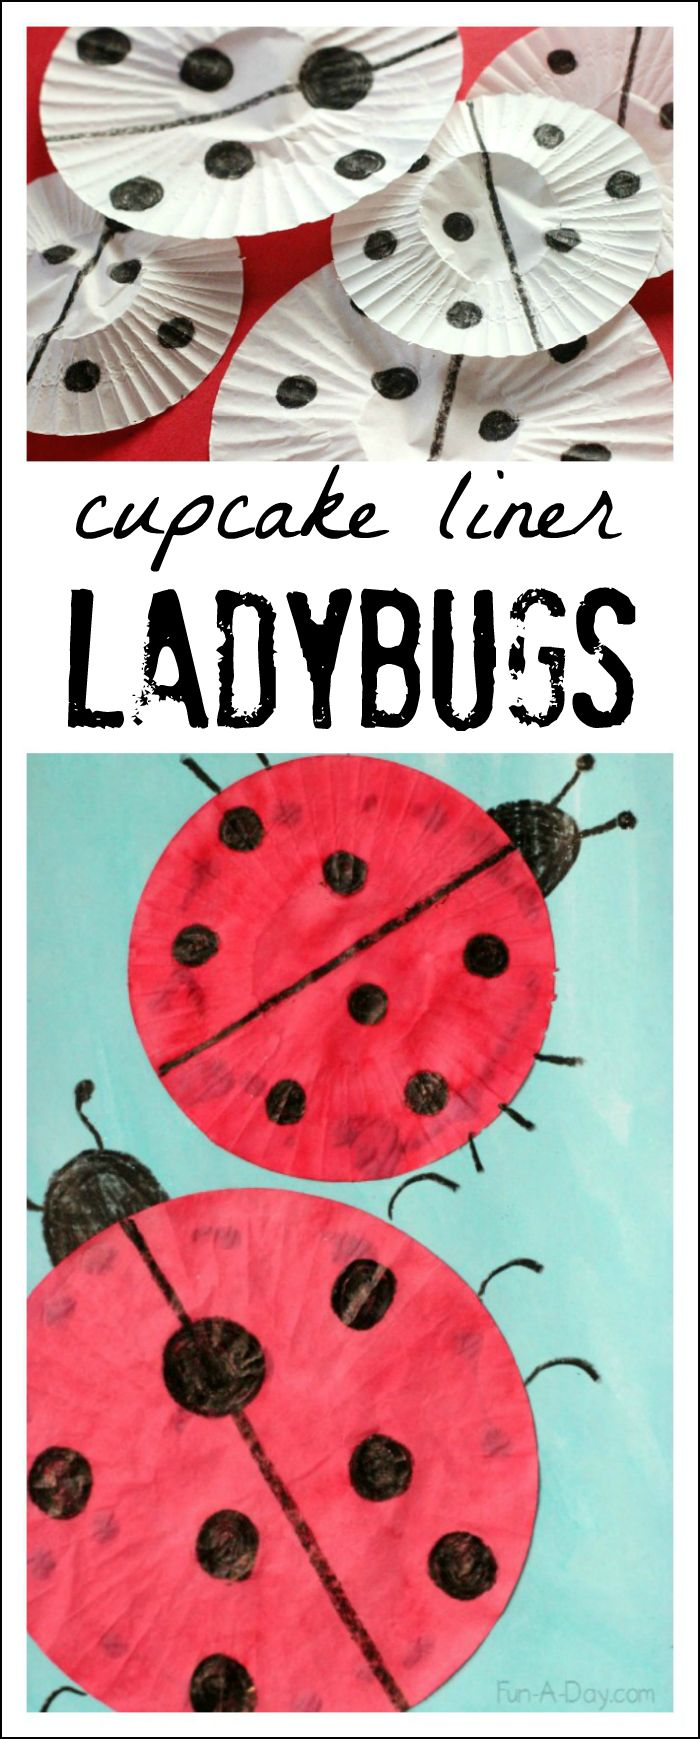 I love how easy and fun this cupcake liner ladybug craft is